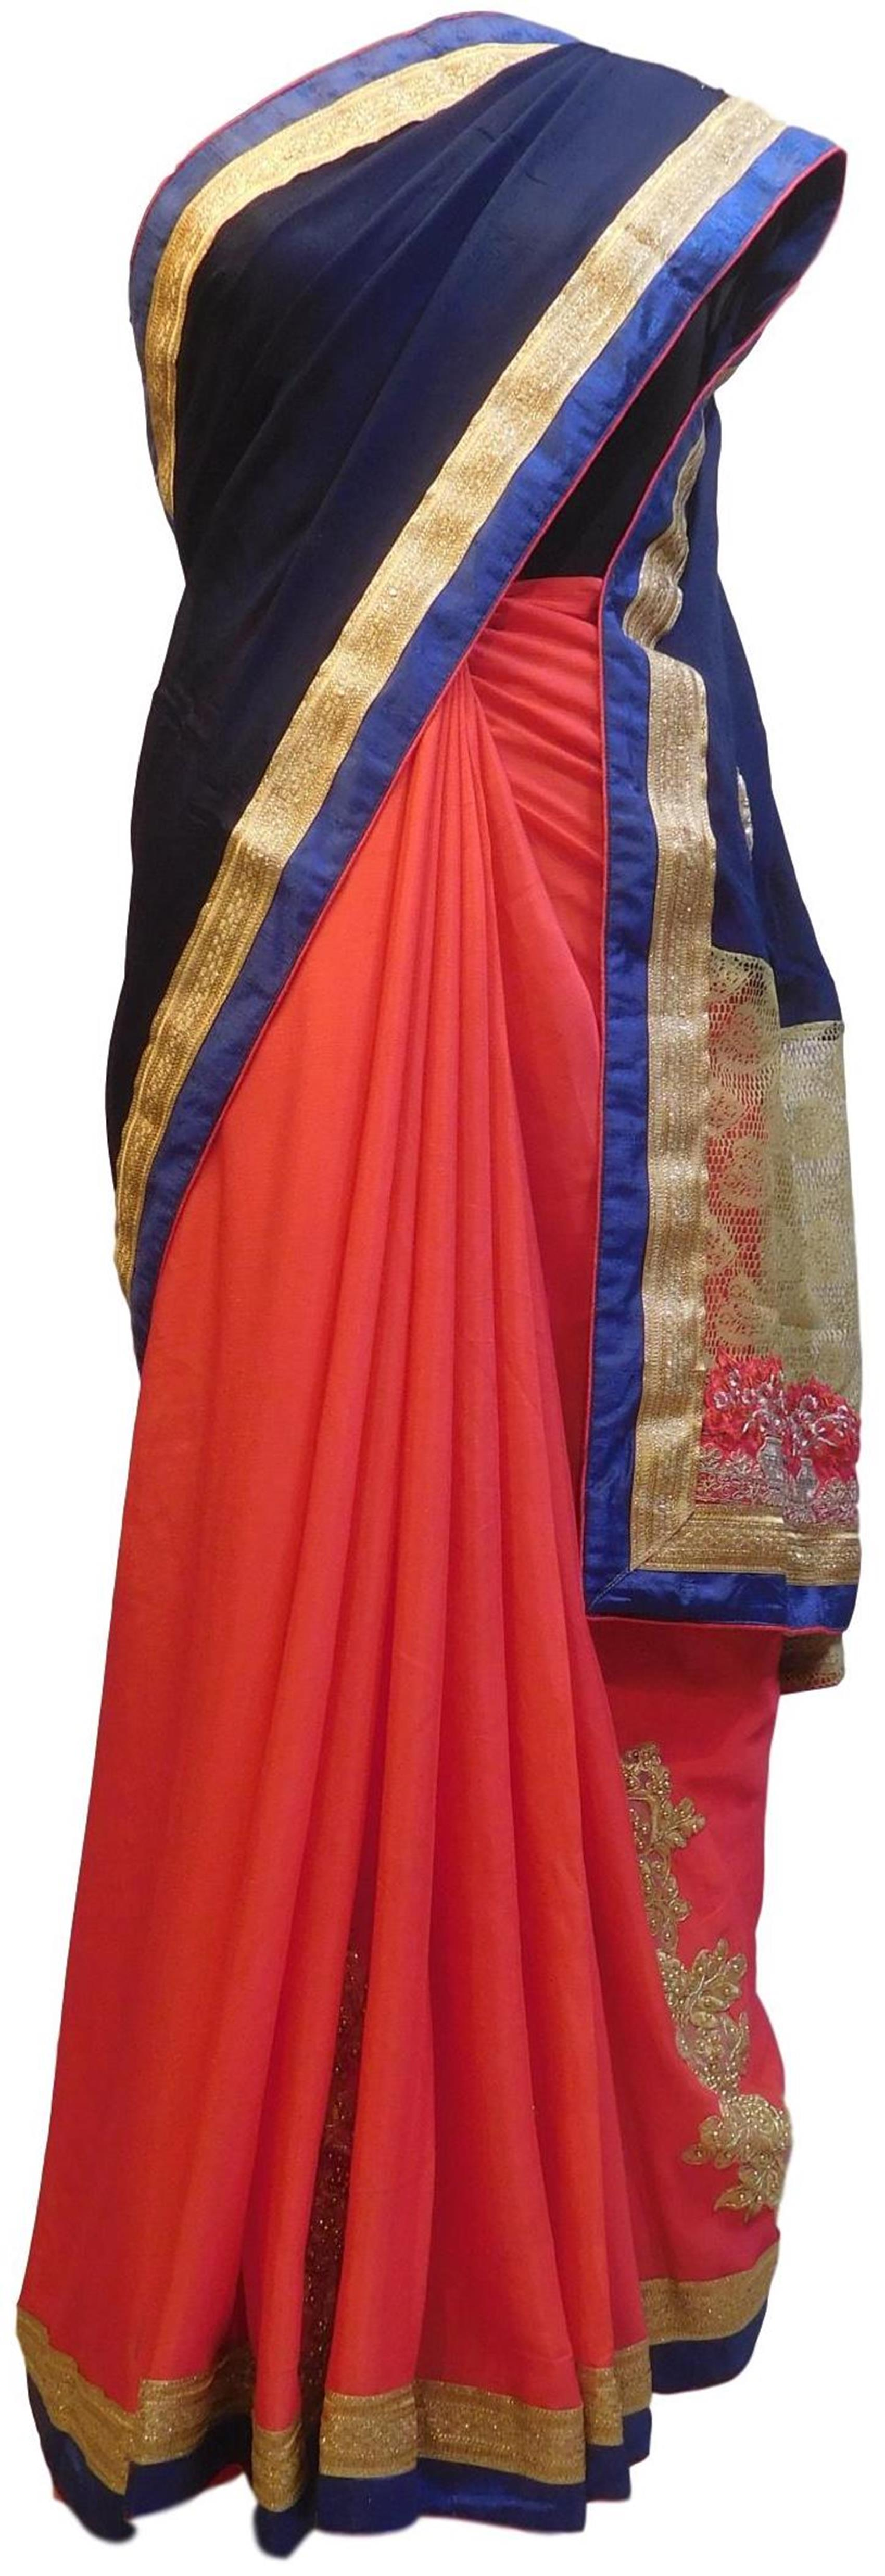 Blue & Red Designer PartyWear Bridal Crepe (Chinon) Beads Zari Thread Stone Pearl Hand Embroidery Work Wedding Saree Sari E374